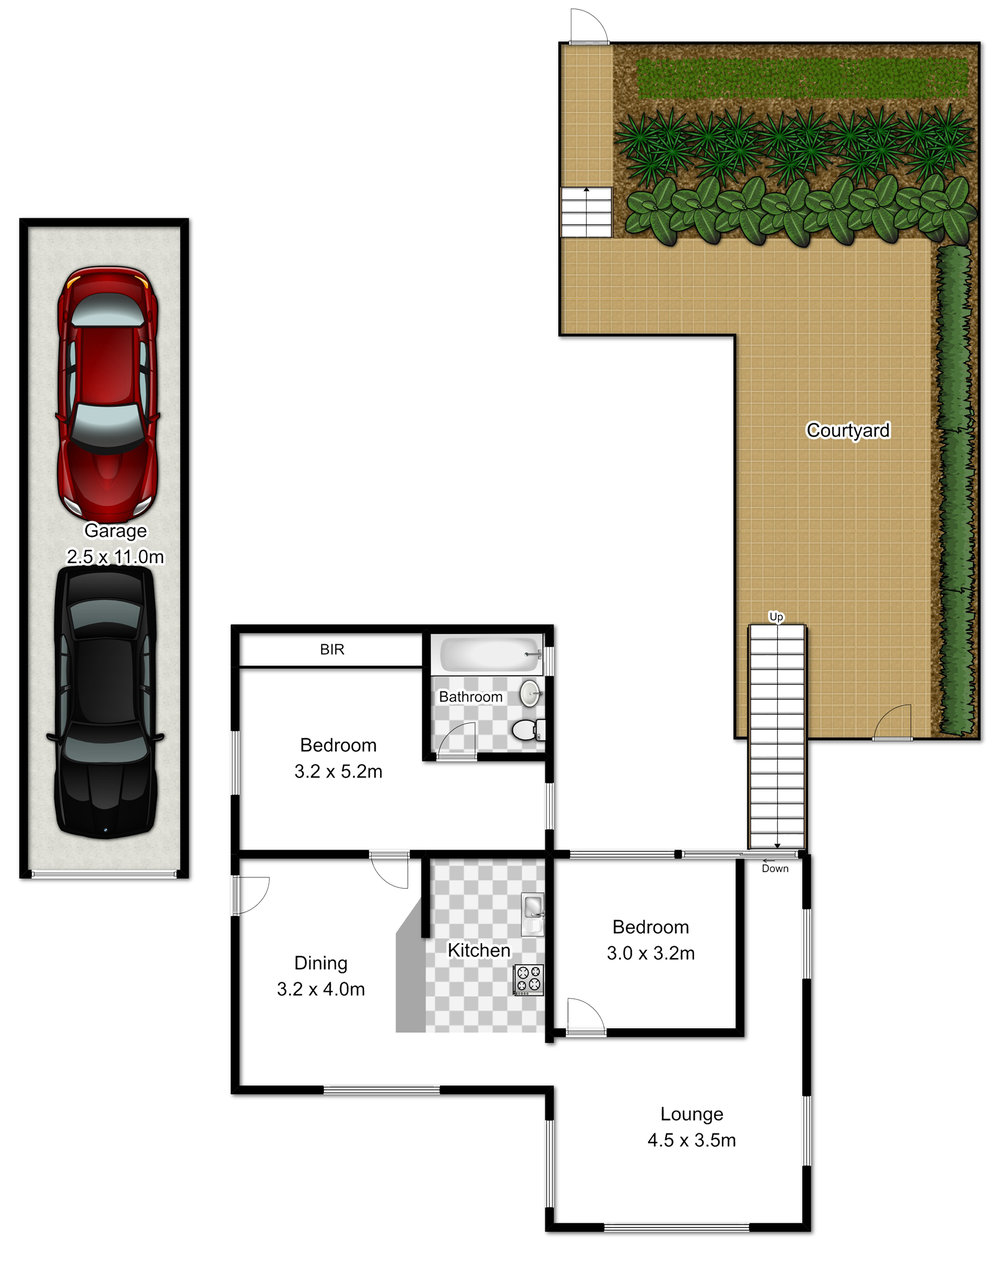 floorplan 8 73 Queenscliff.jpg